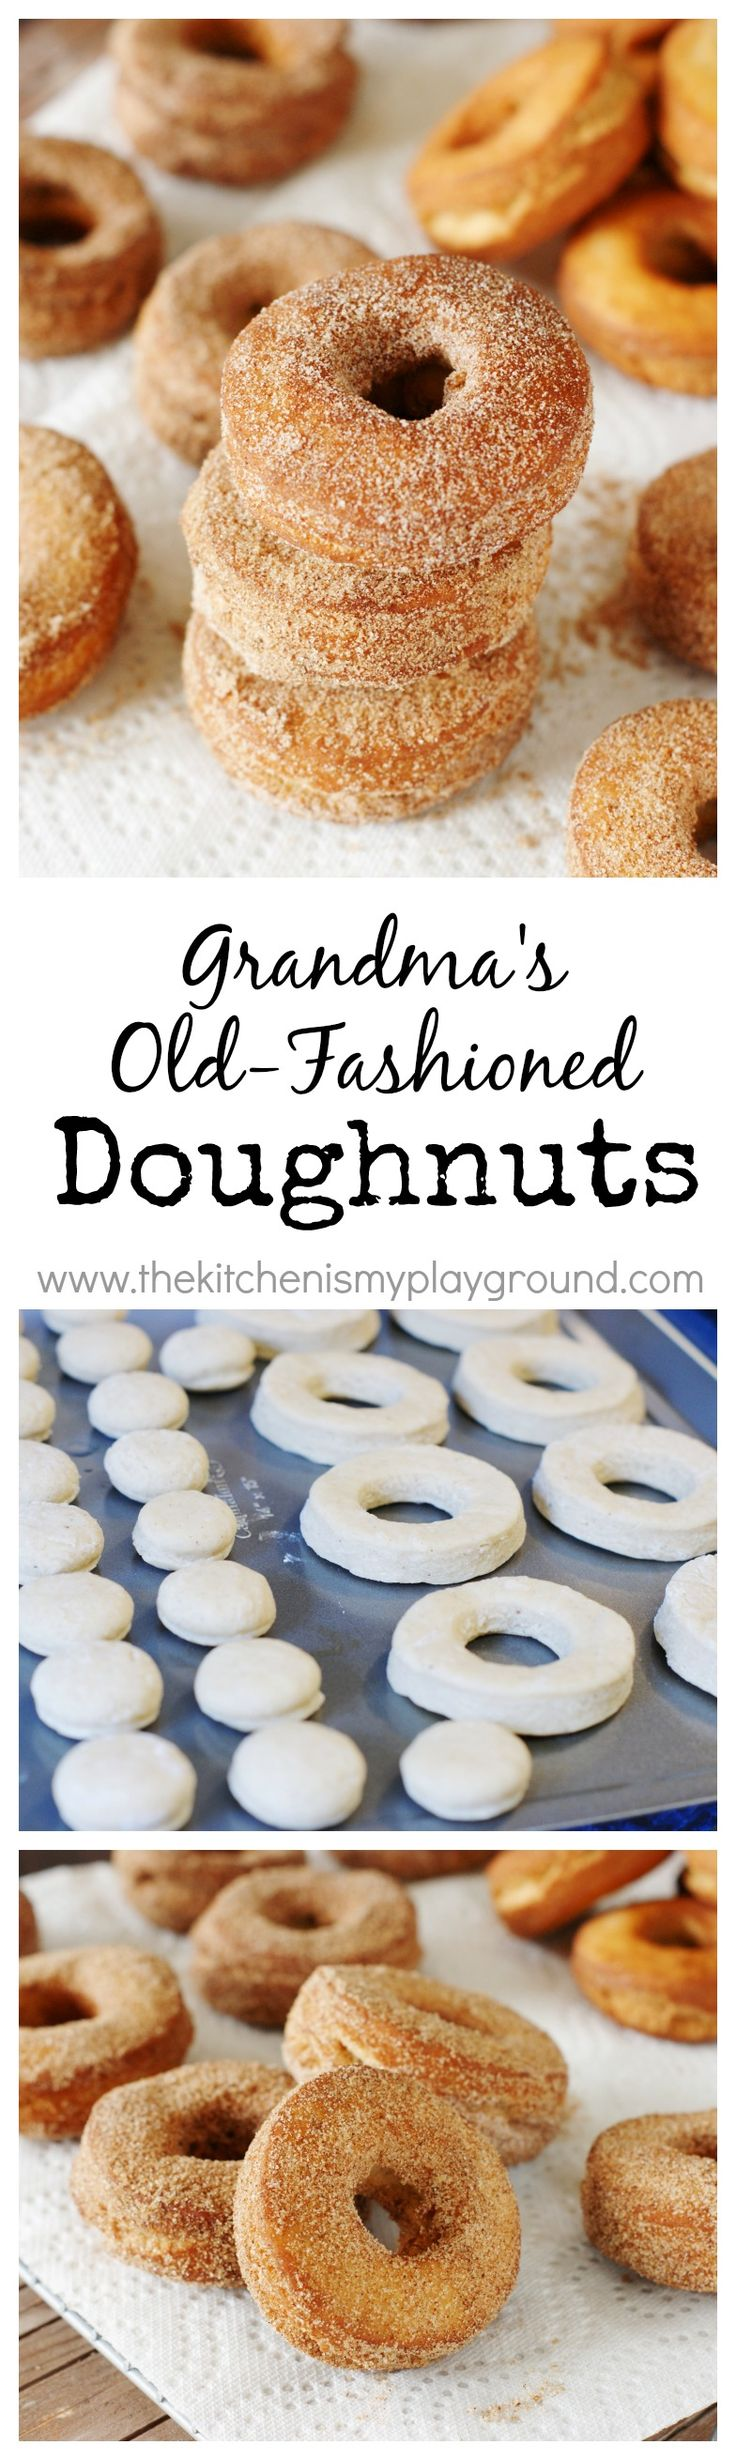 Grandmas Old-Fashioned Doughnuts ~ Serve up these cakey beauties plain or coated all around in cinnamon sugar.   www.thekitchenismyplayground.com